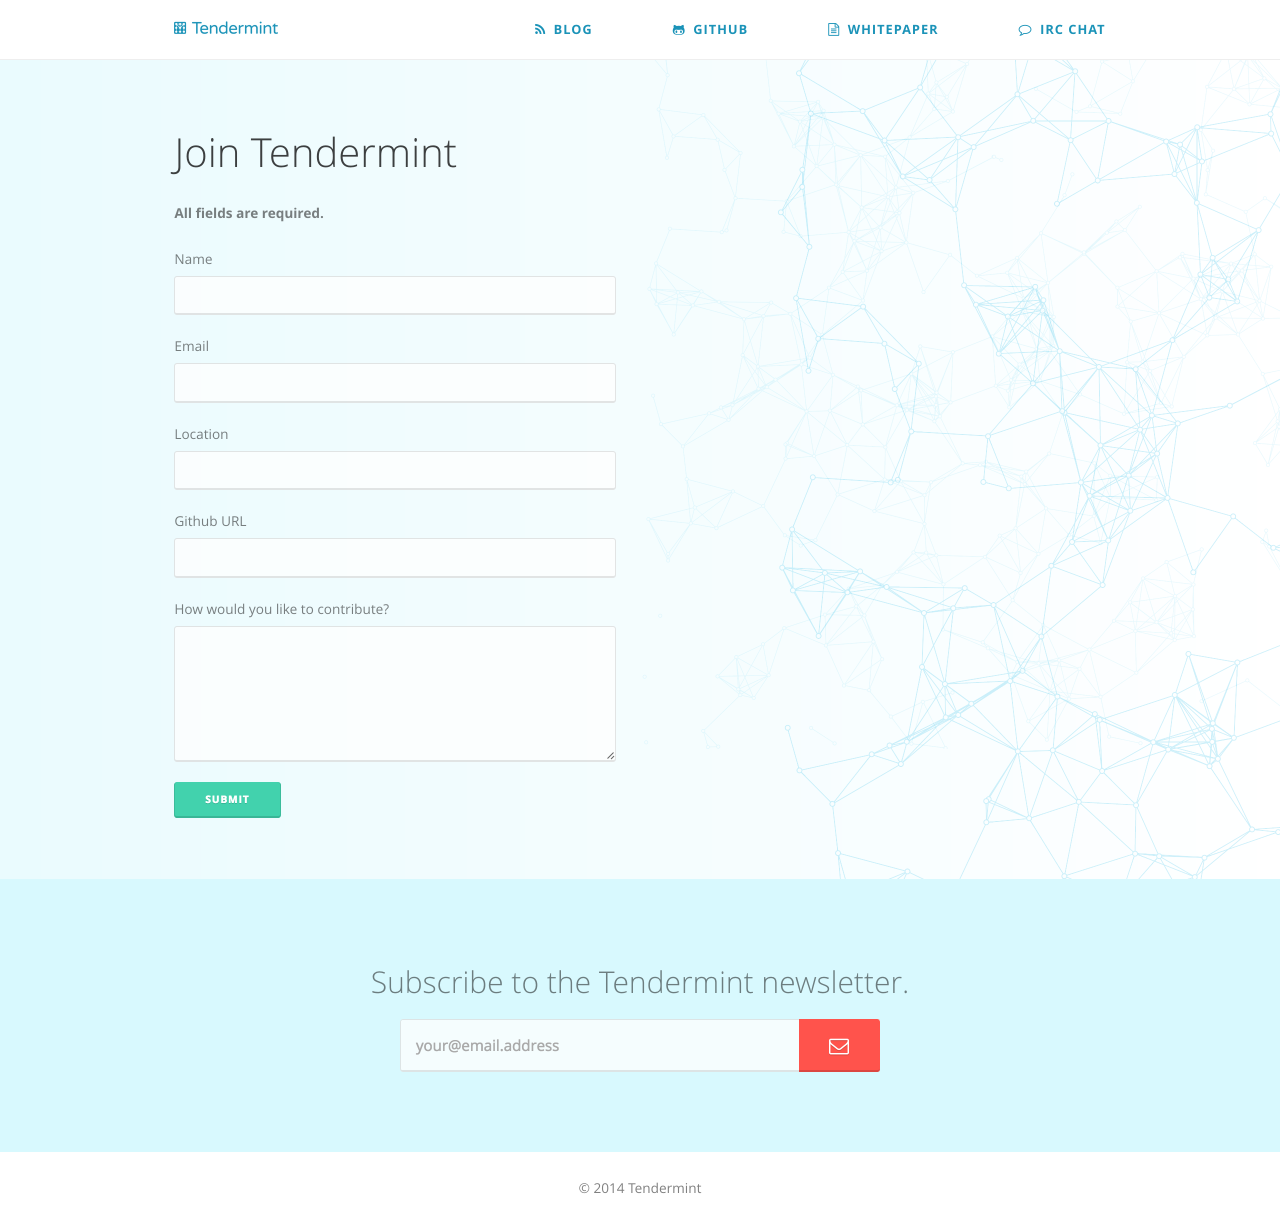 Tendermint | Form Page, Desktop